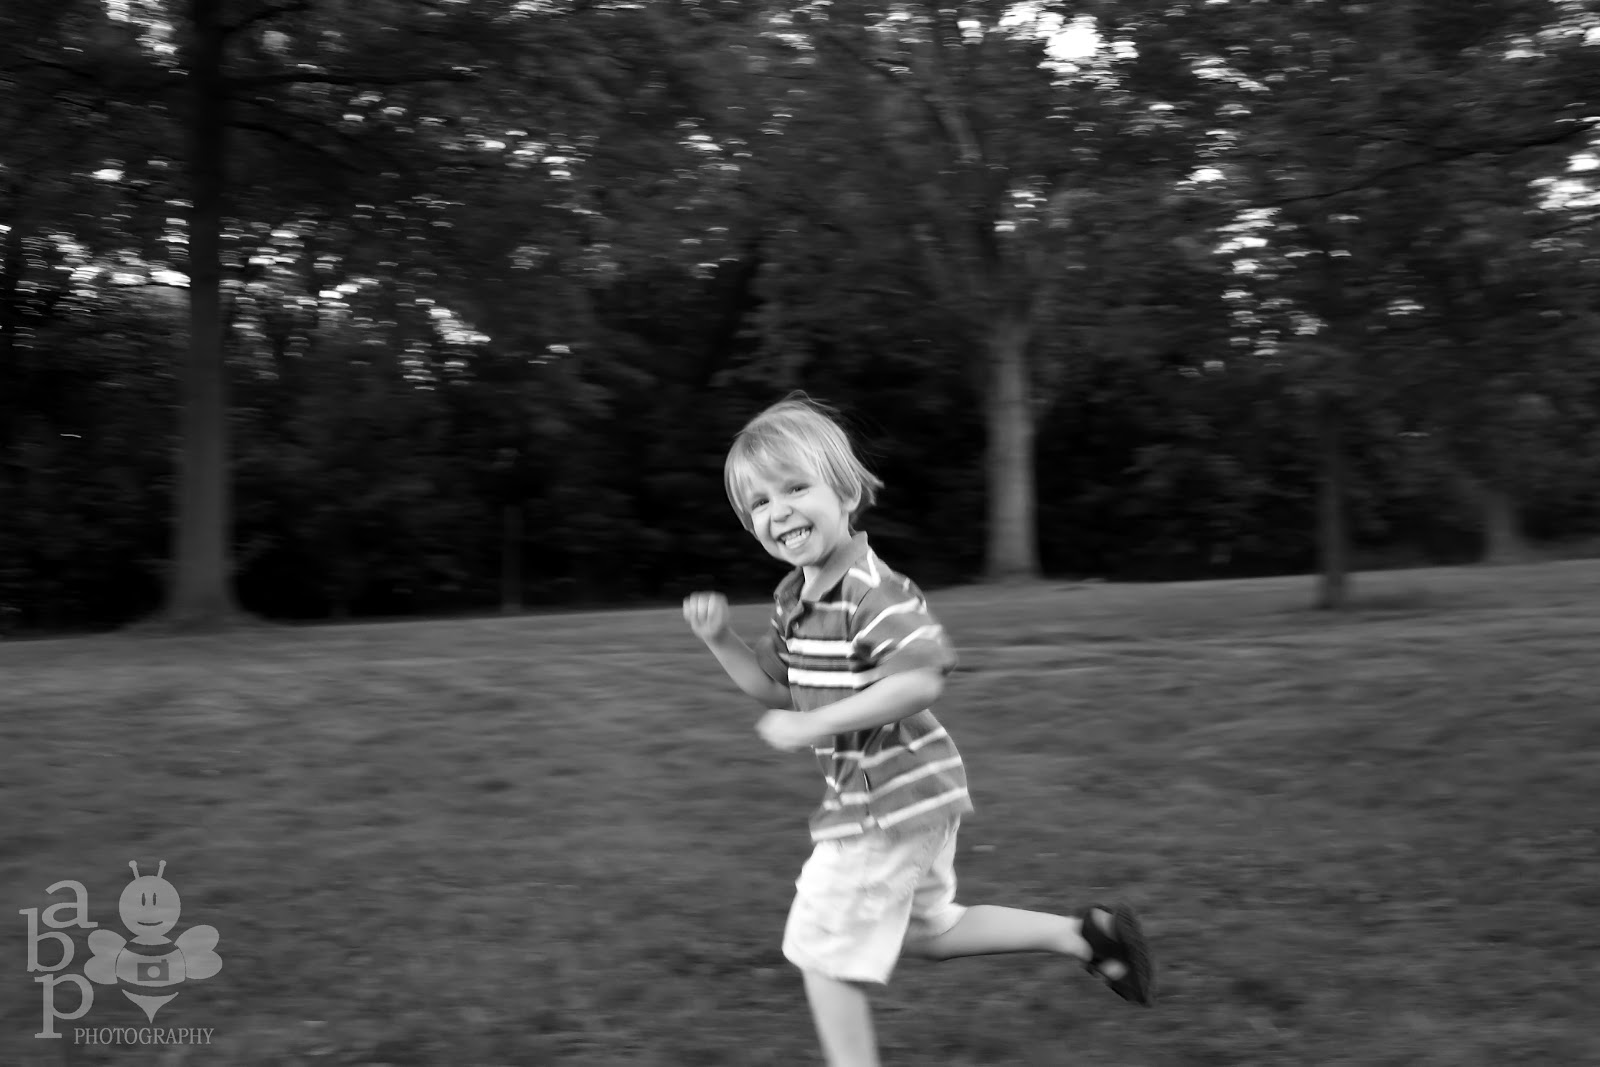 A Boy In Motion   ABP Photography